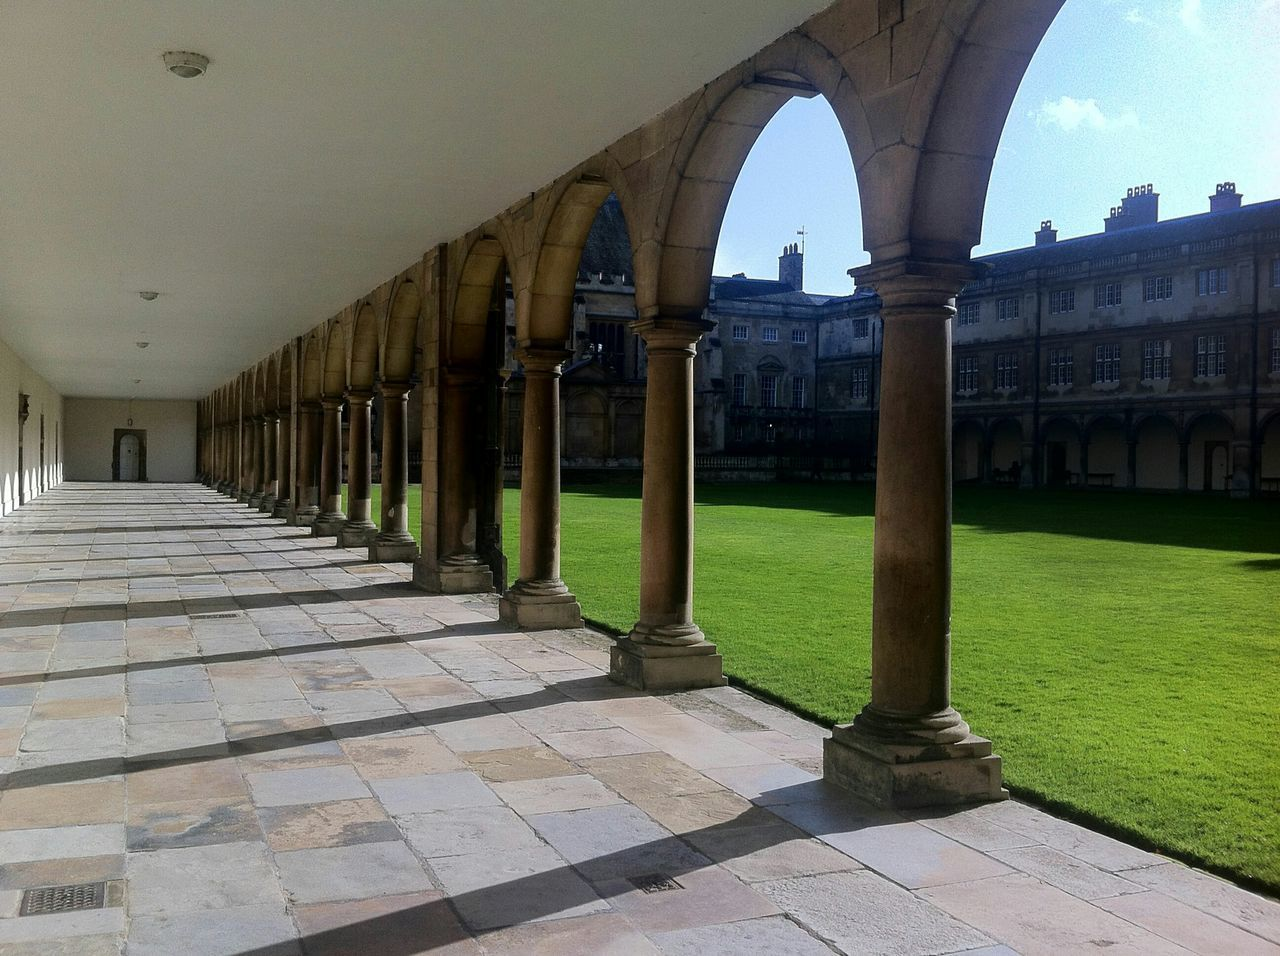 Cambridge Trinity College Cloister Archs Architecture Green No People Corridor Perspective Arches Columns Light And Shadow Empty Corridor Stone Floor Stone Material Cambridge University University Campus Repetition Quiet Quiet Places